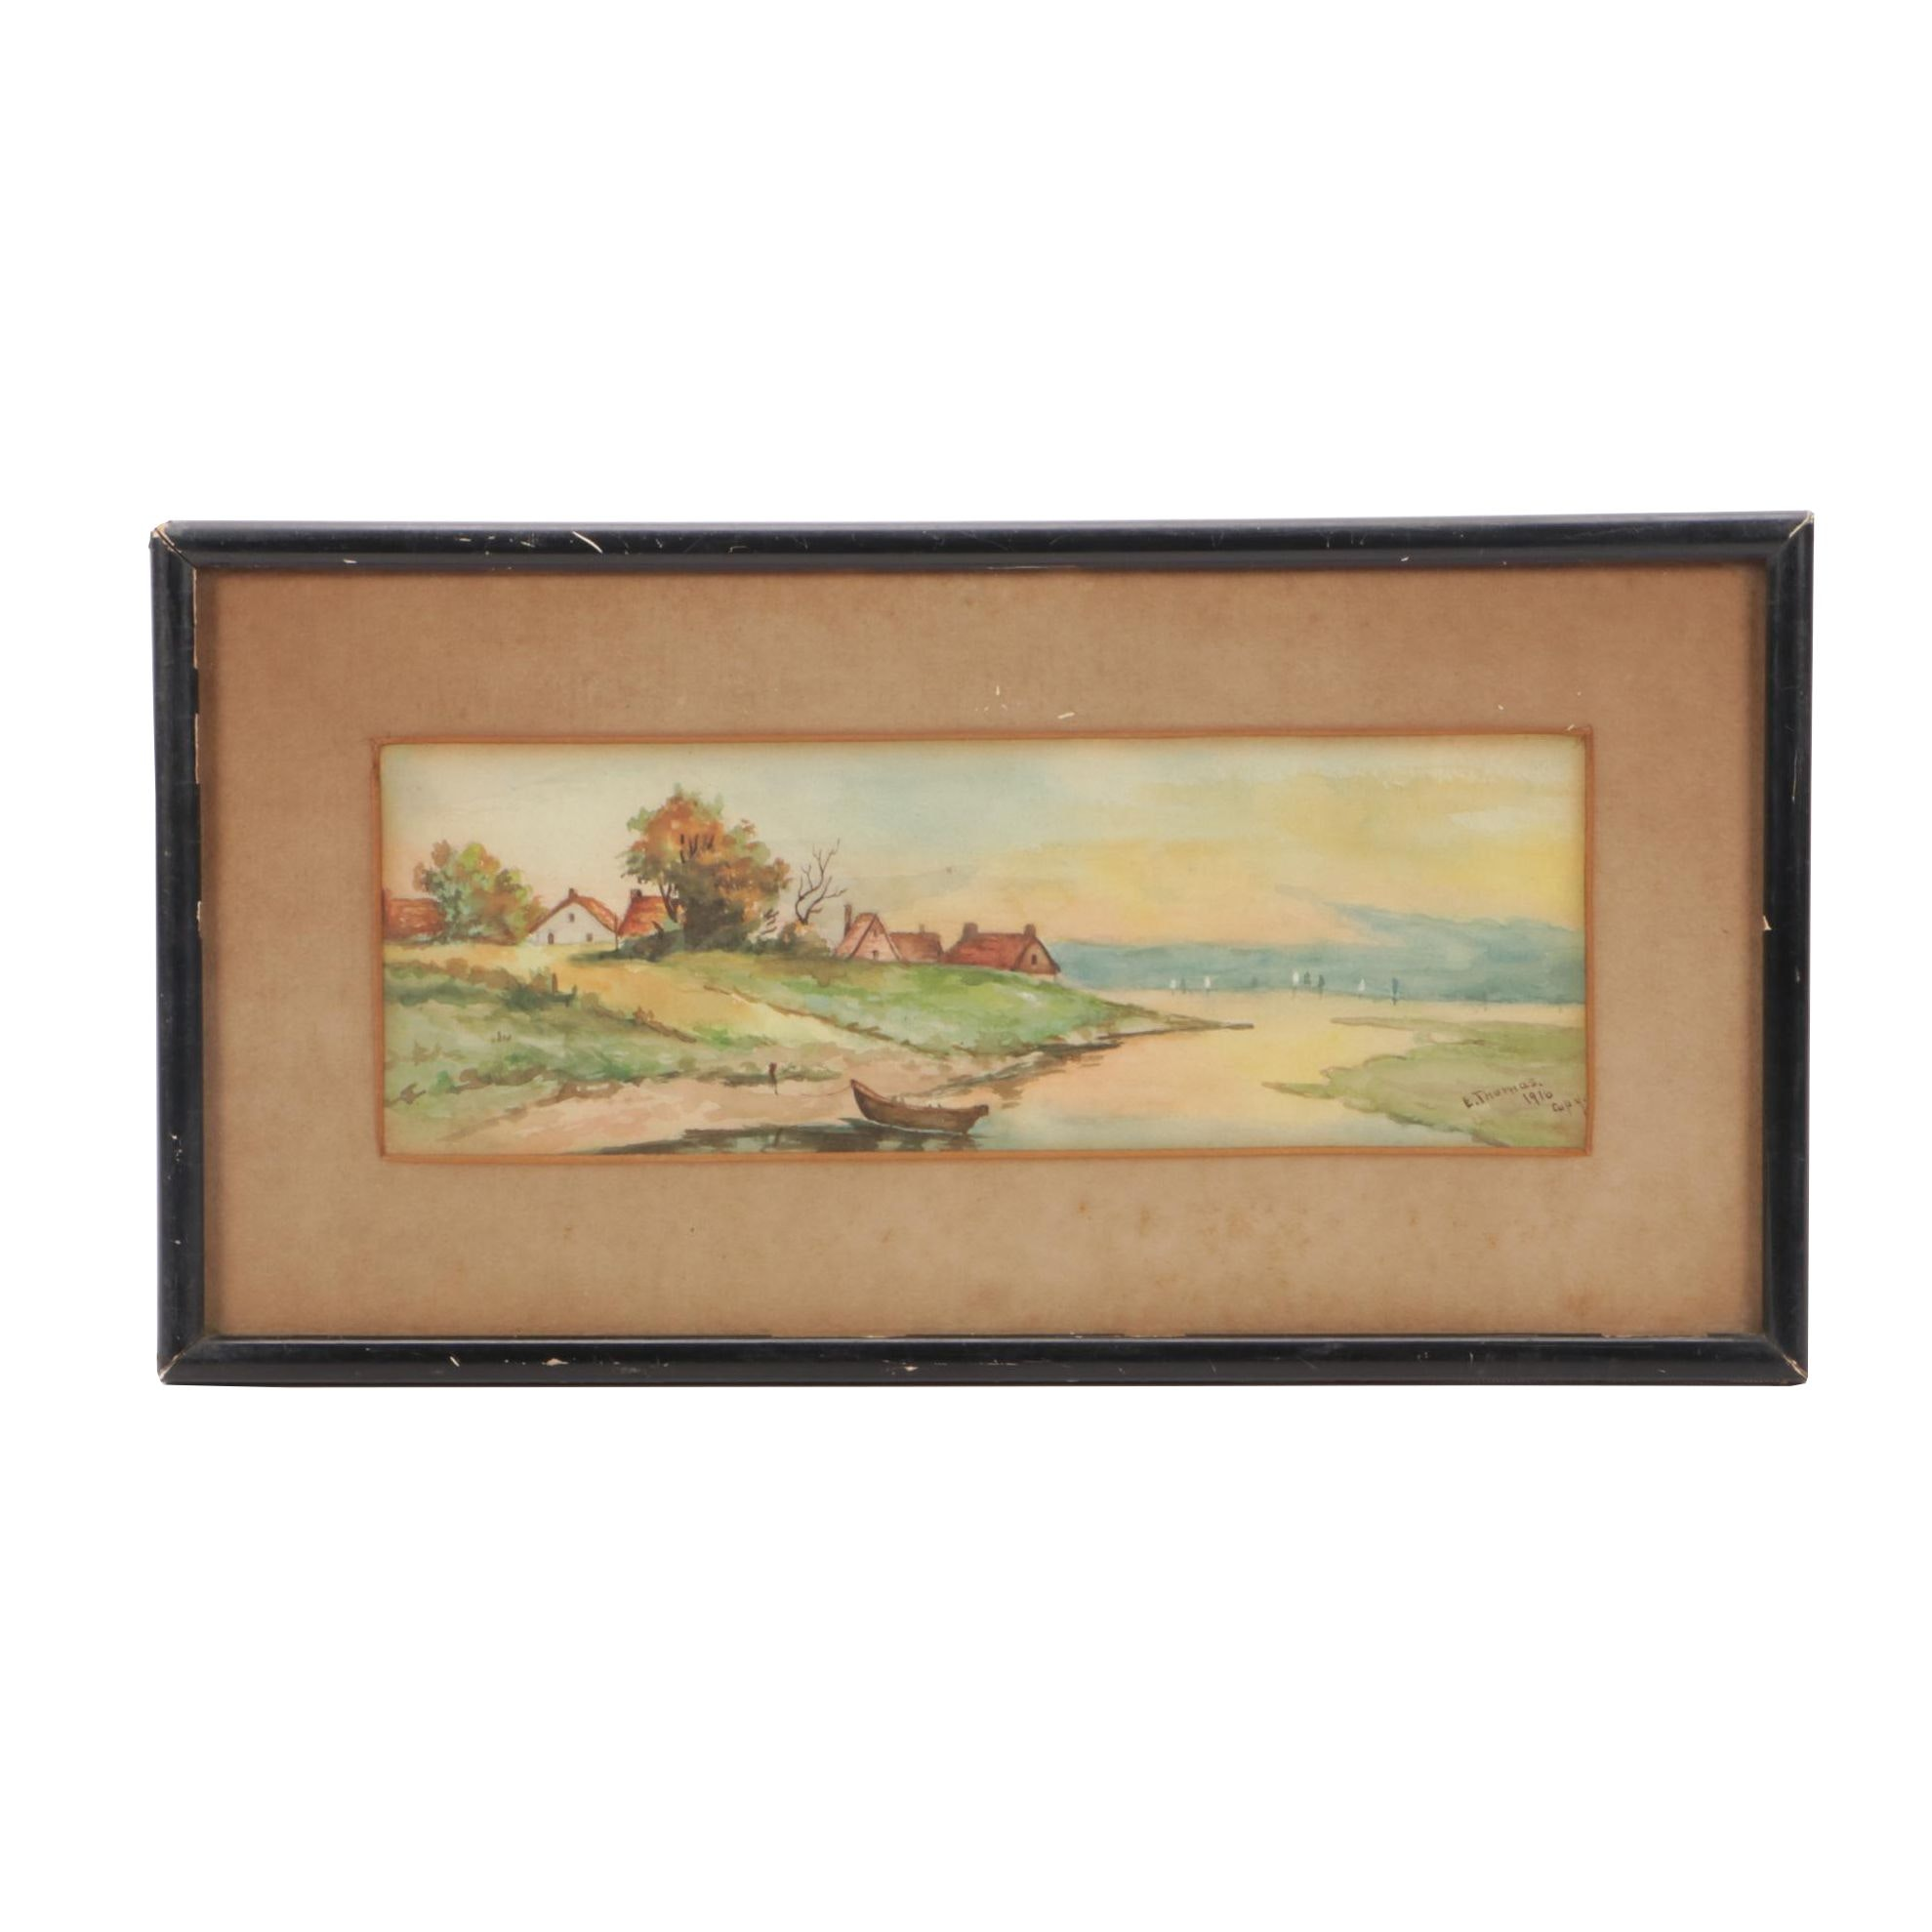 Early 20th-Century Watercolor Landscape Copy Painting